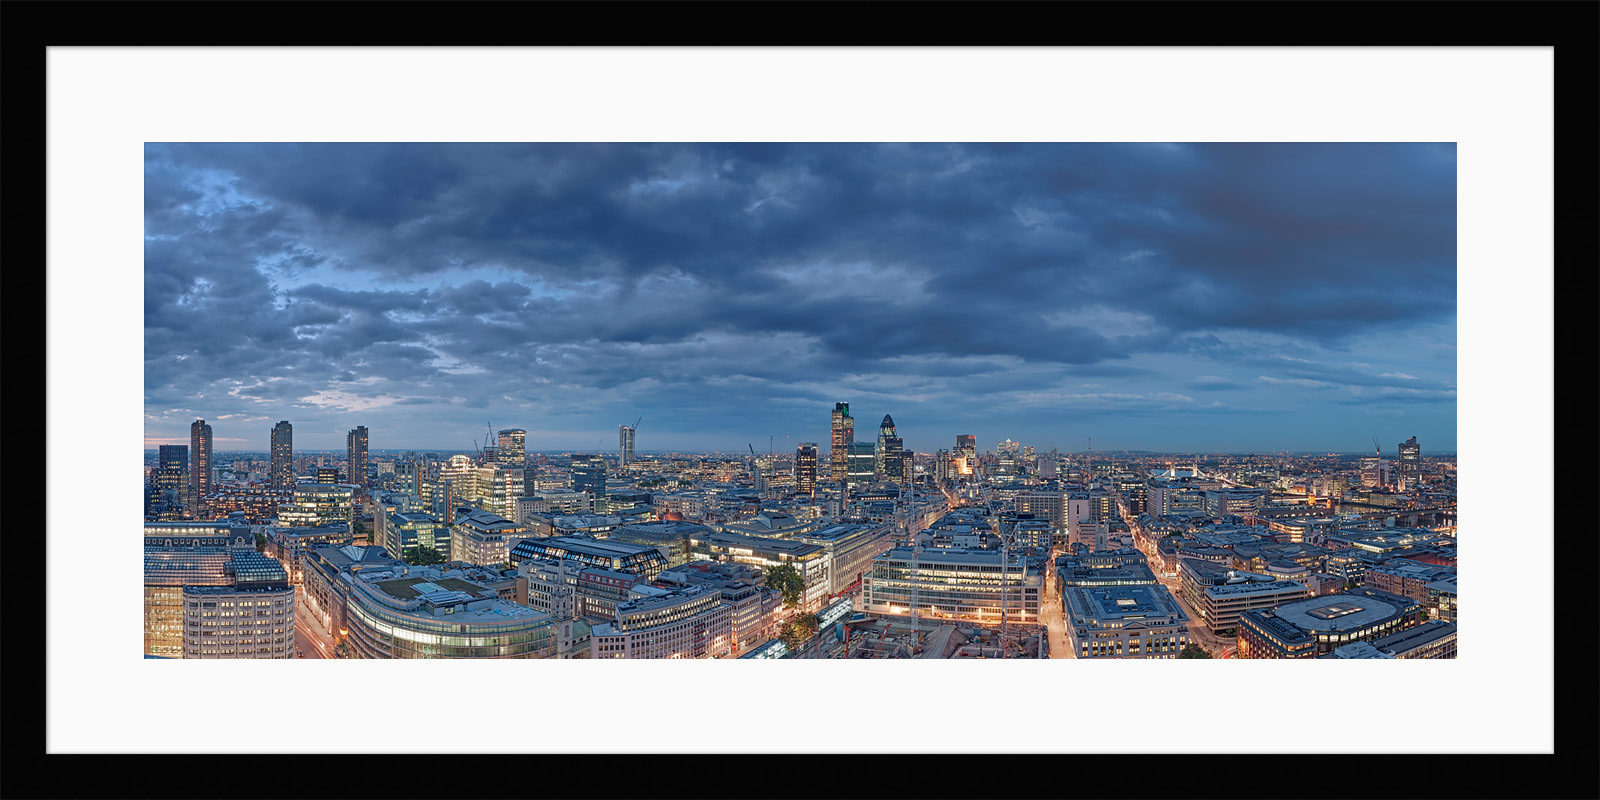 City Of London Night Falls - Framed Photo Print of London